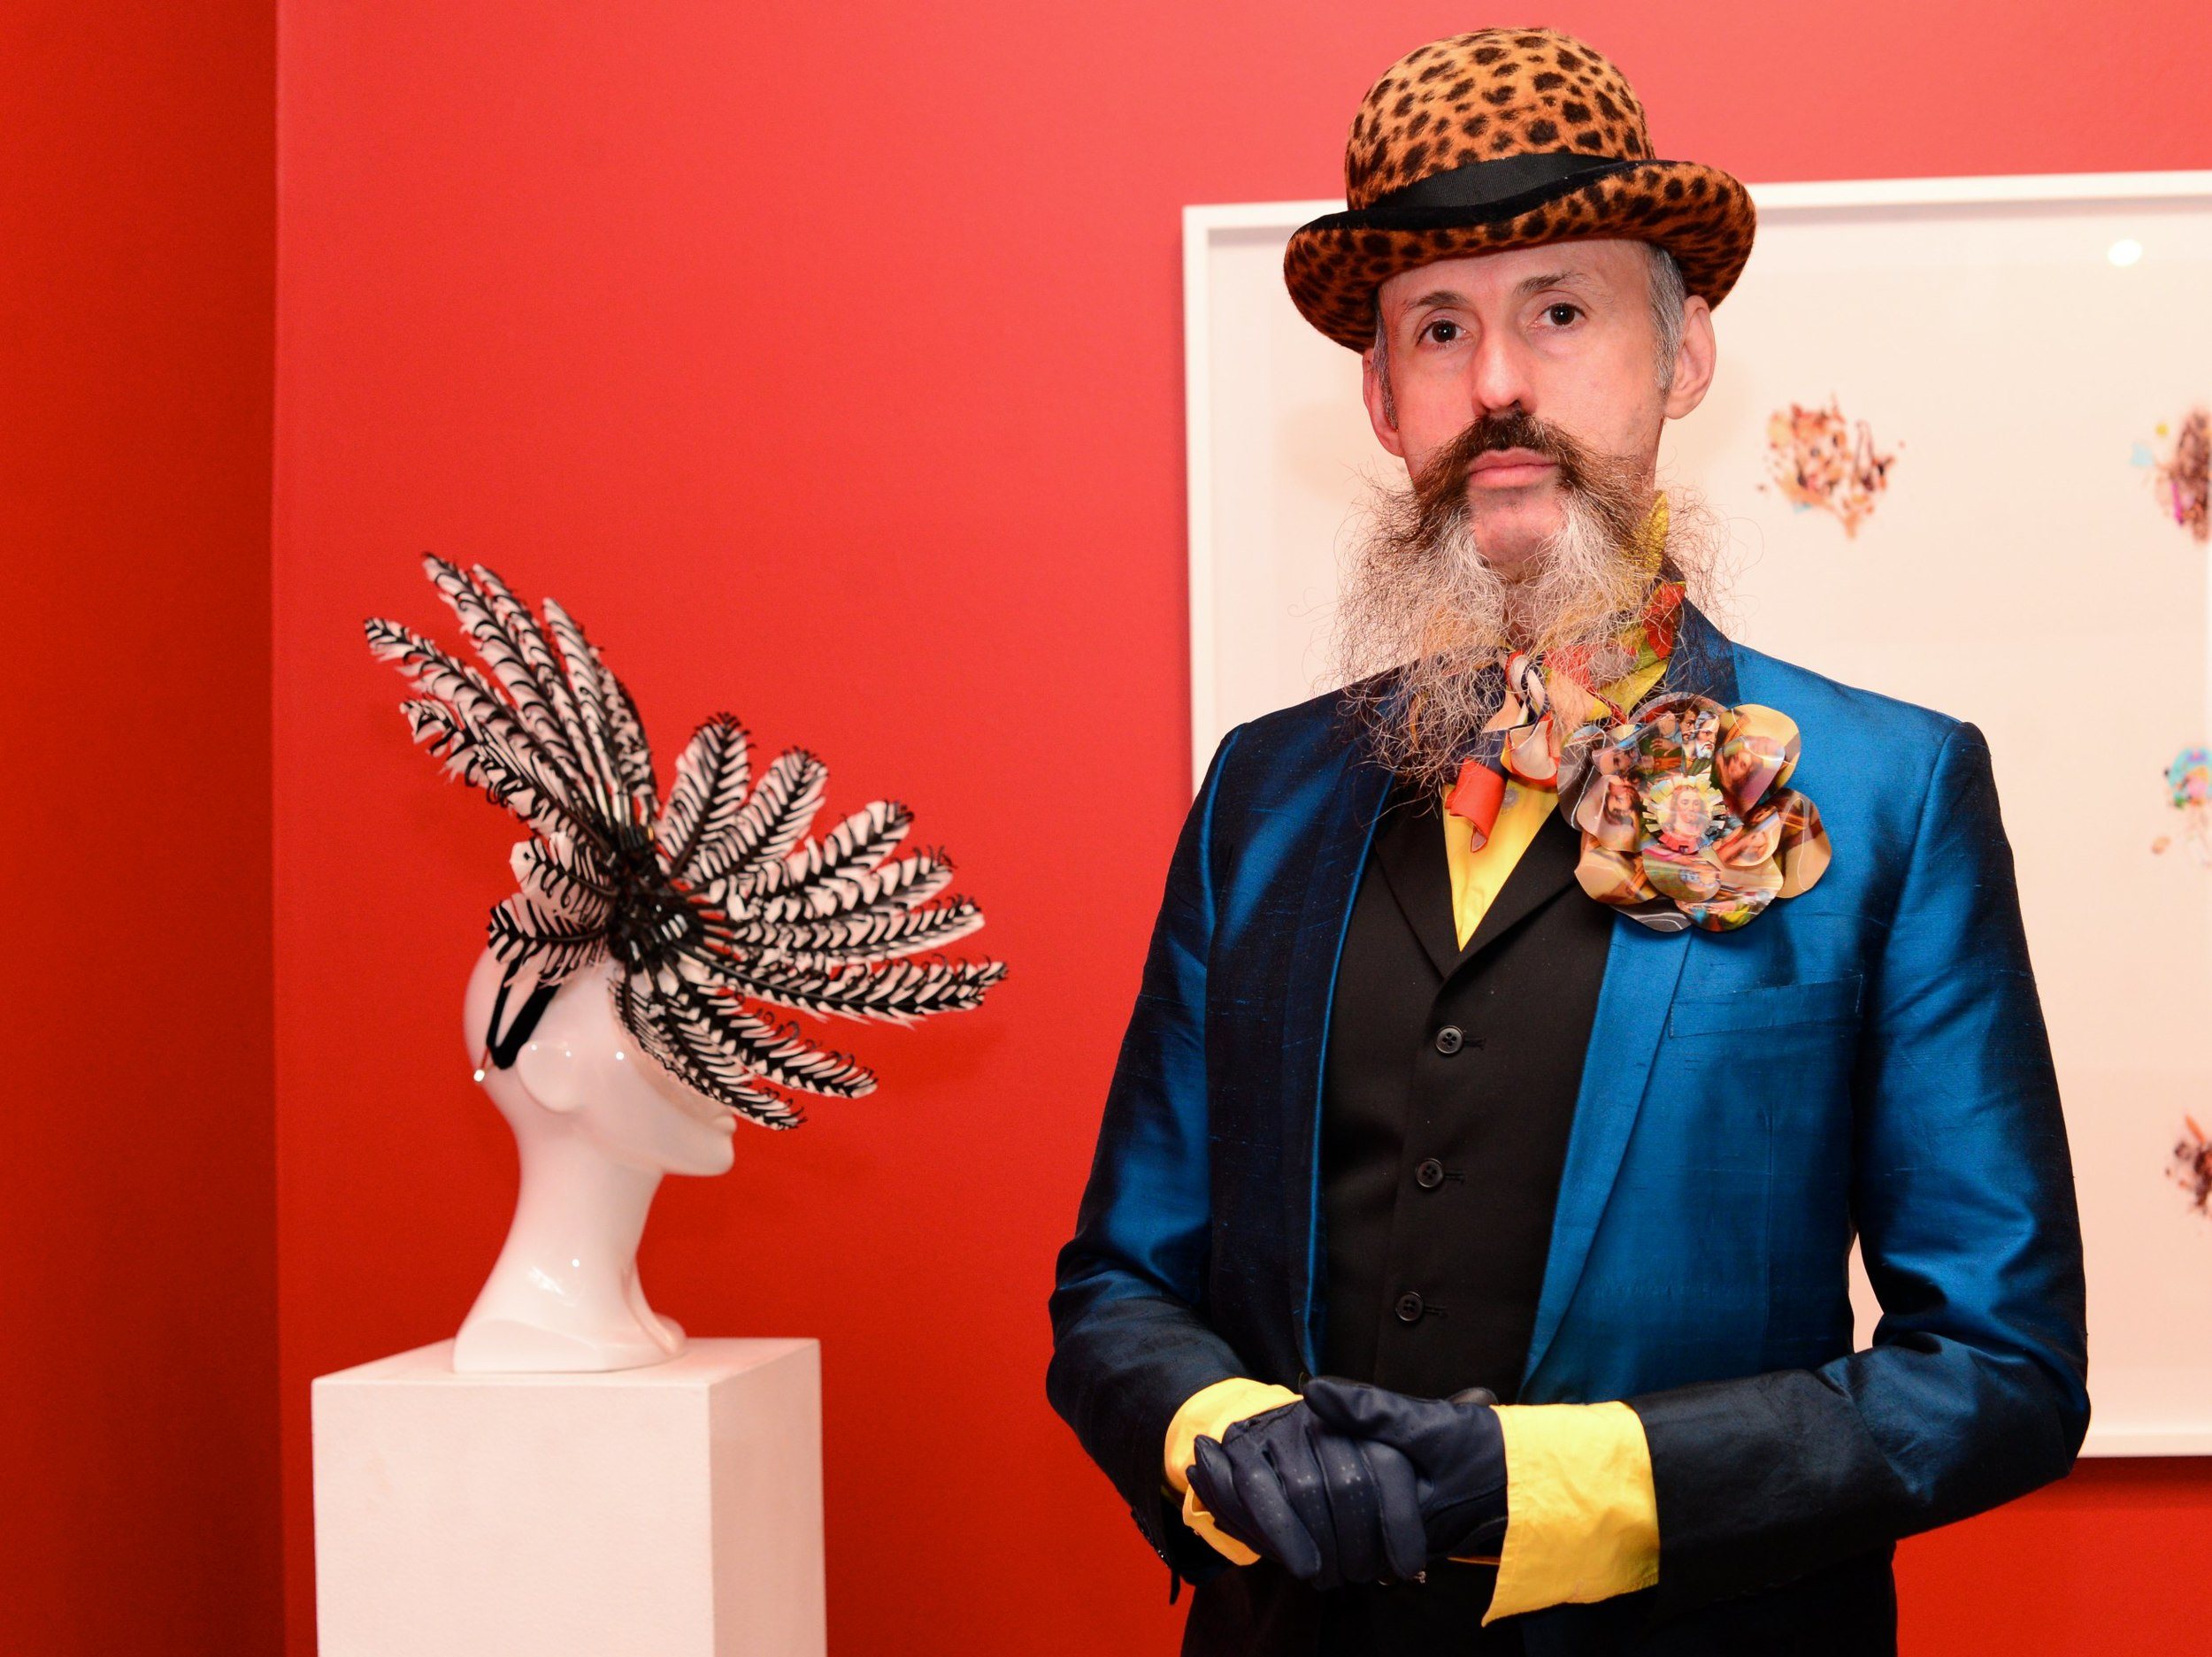 Milliner Richard Nylon launches The Eternal Headonist at The Anna Pappas Gallery in Prahran